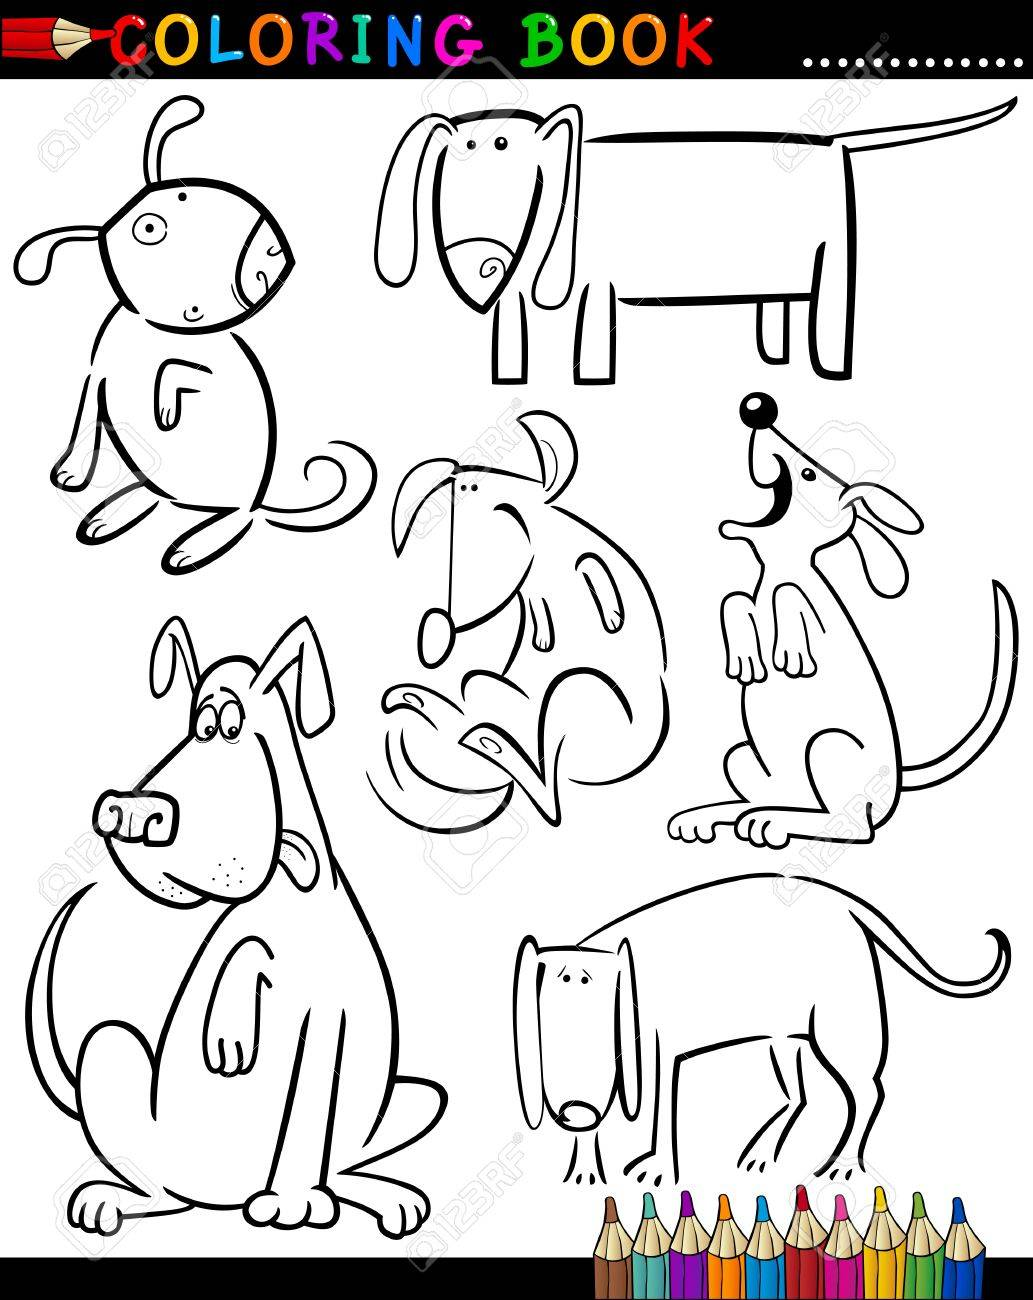 Coloring Book Or Page Cartoon Illustration Of Funny Dogs And ...